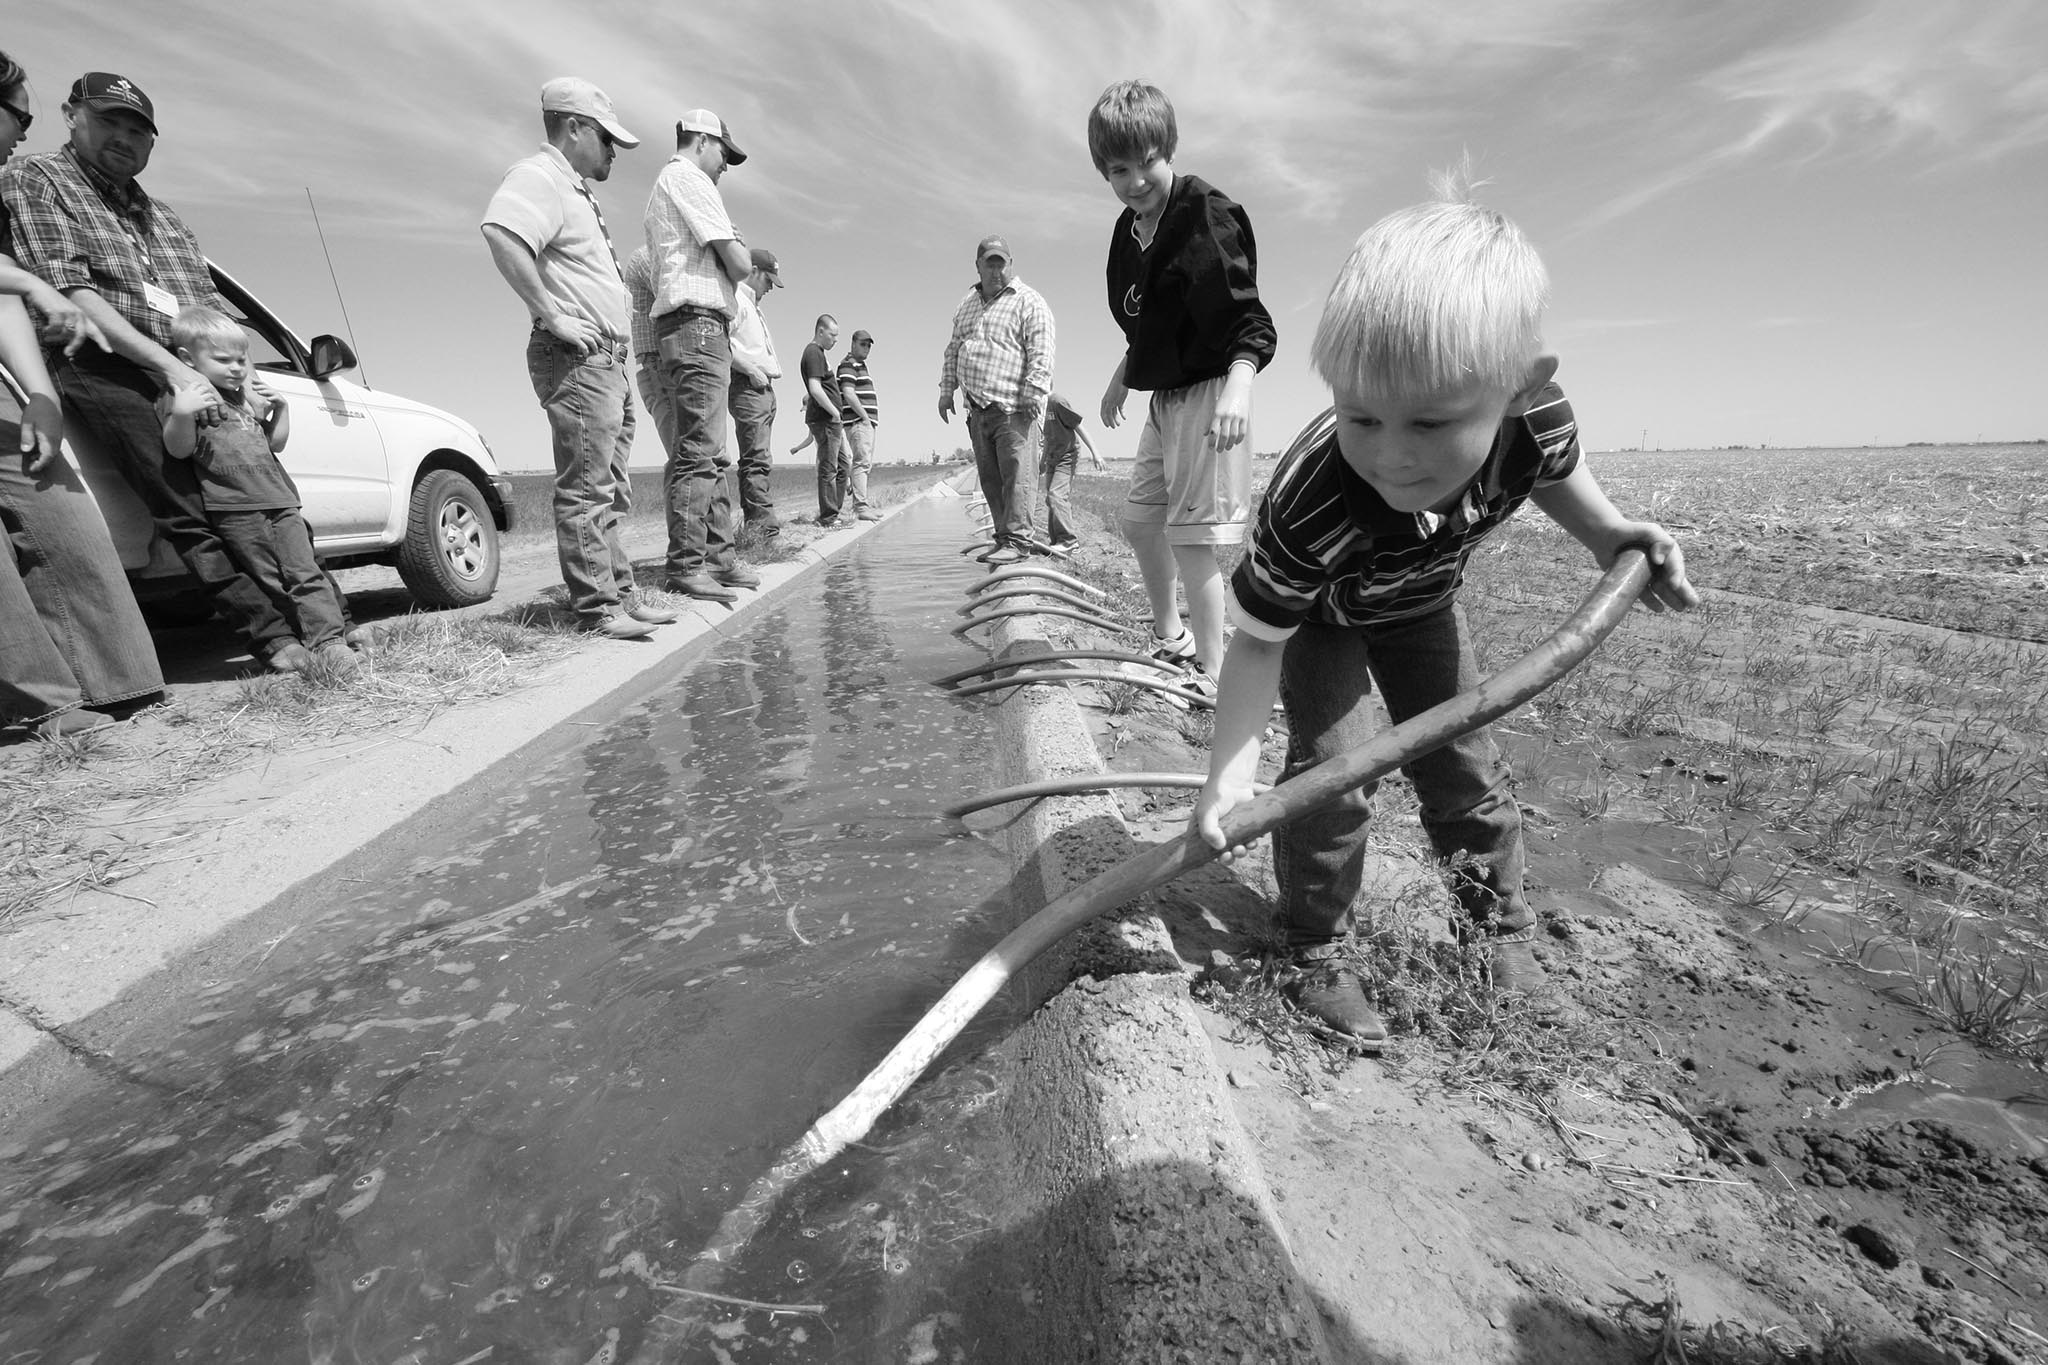 Here, a young Ryan Taylor of Payne County tries his hand at setting a siphon tube in the Lugert-Altus Irrigation District as part of a 2011 OKFB Young Farmers & Ranchers tour.